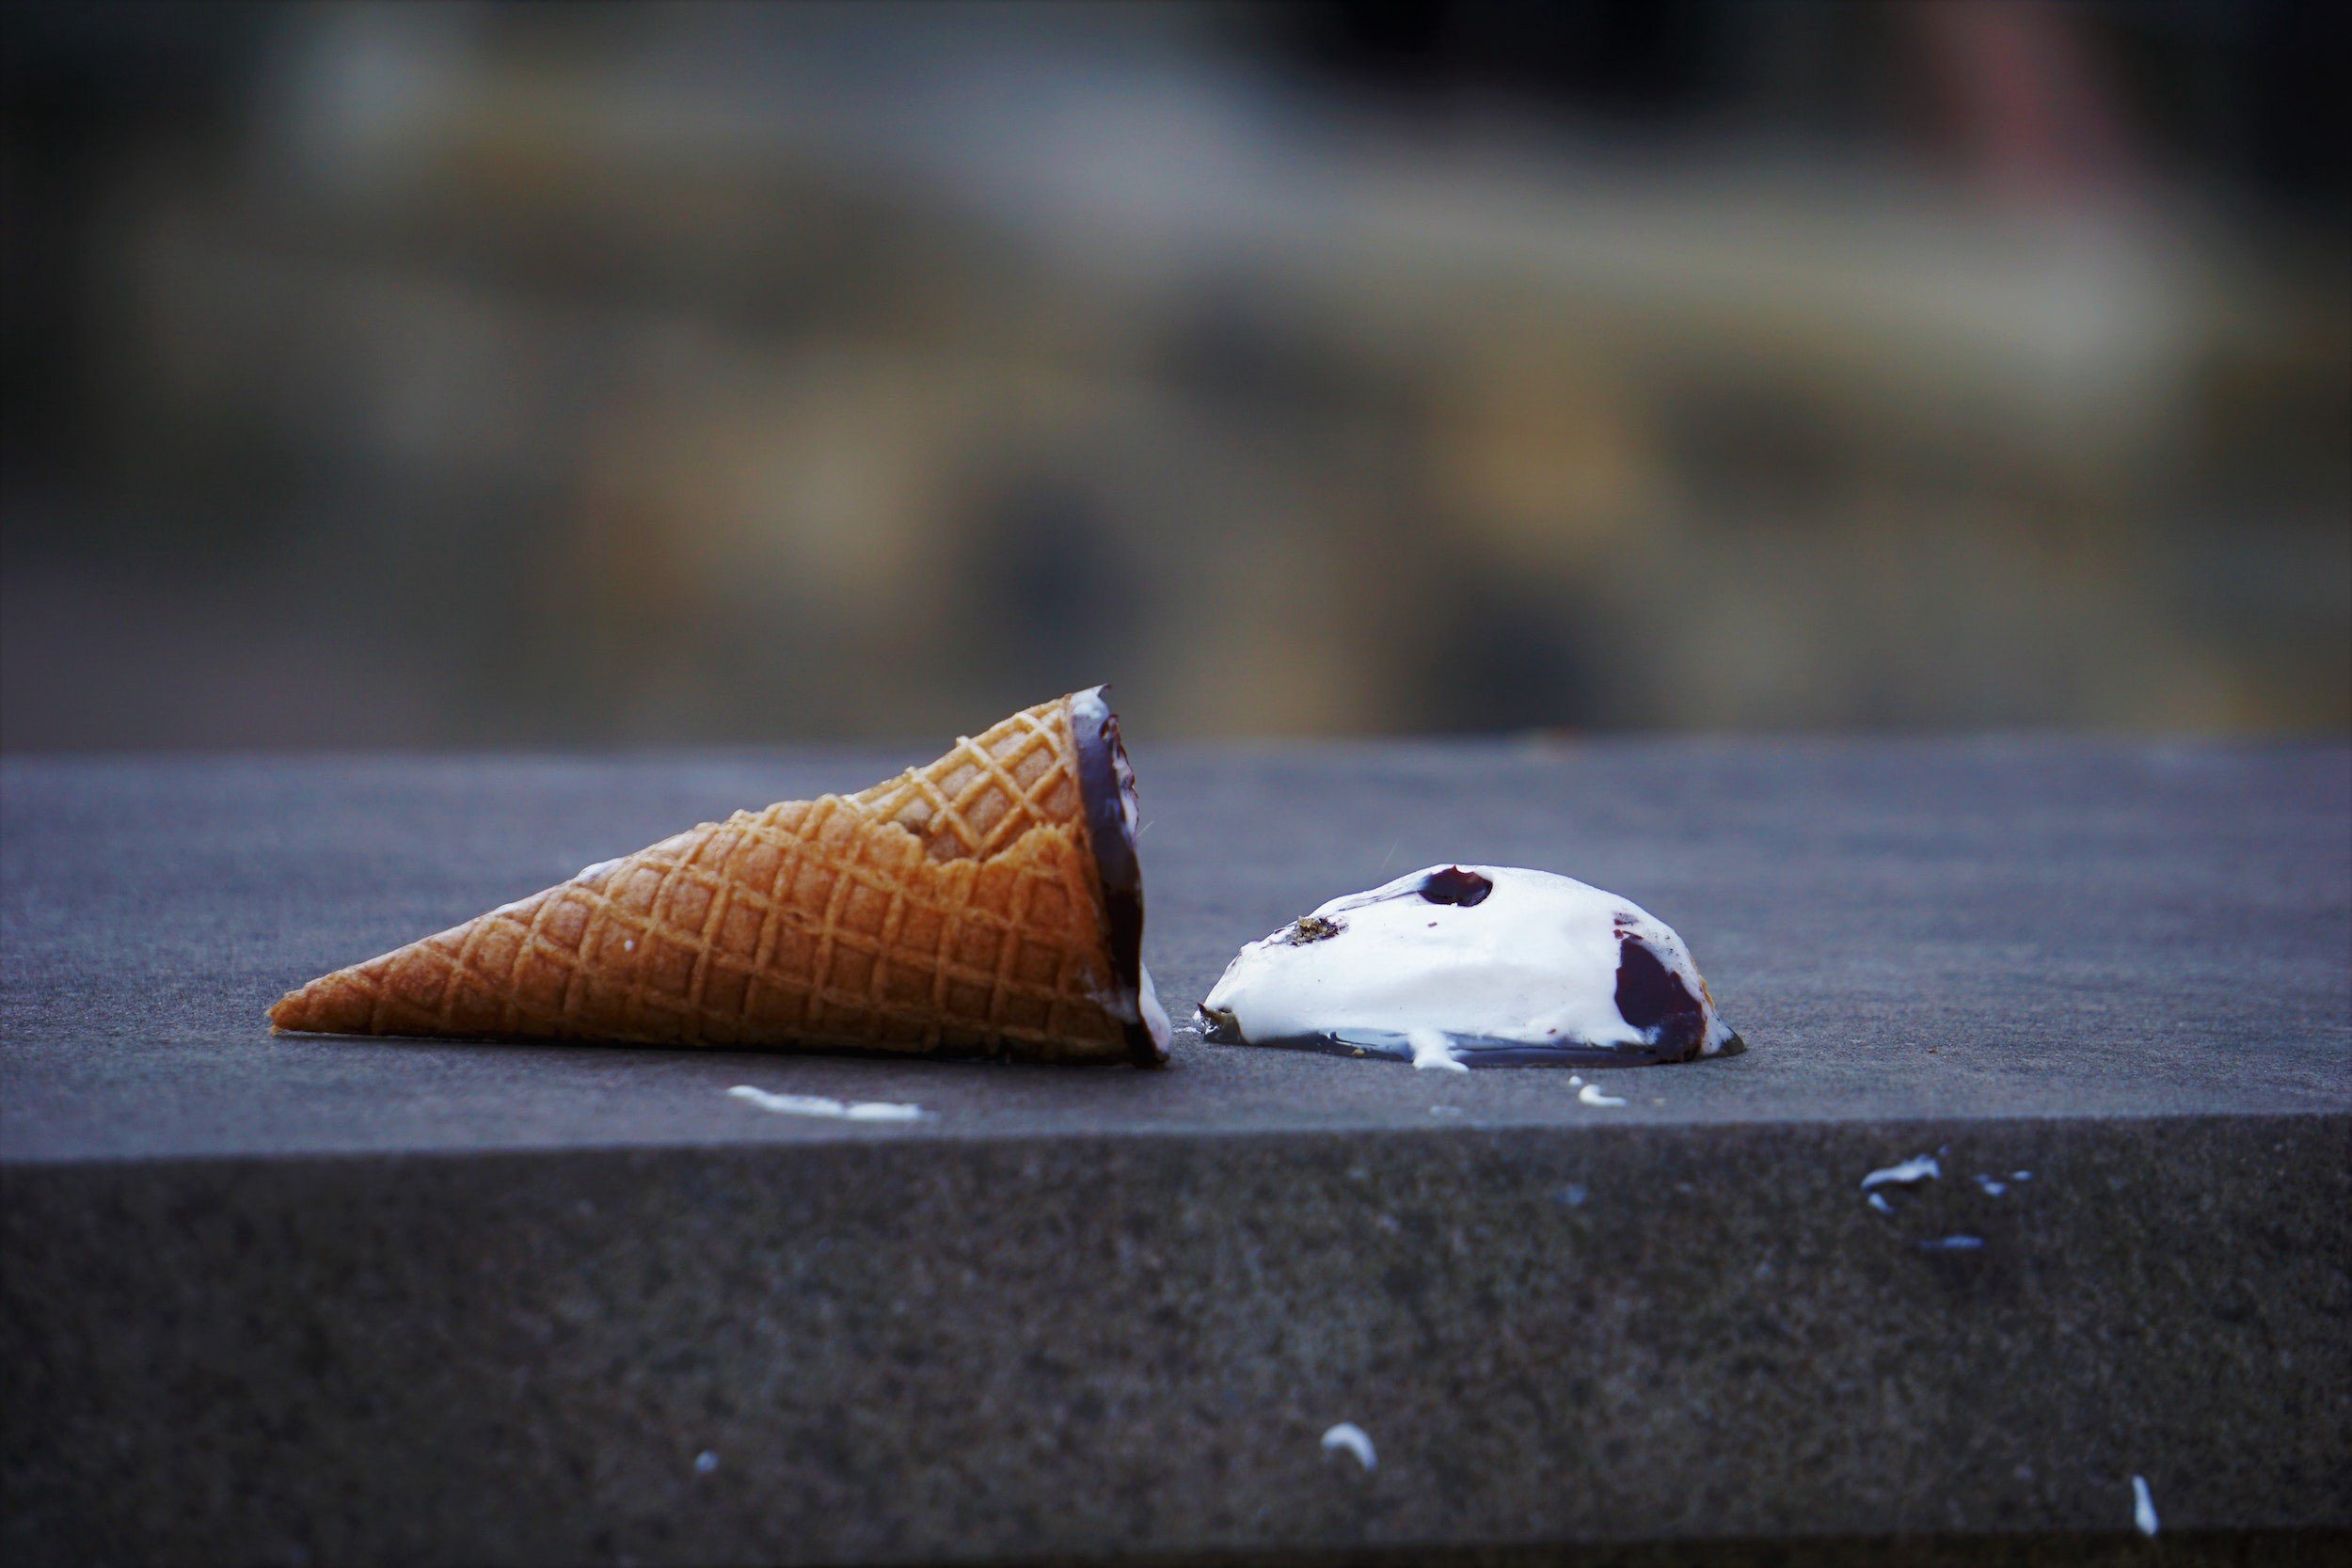 Dropped ice cream cone melting